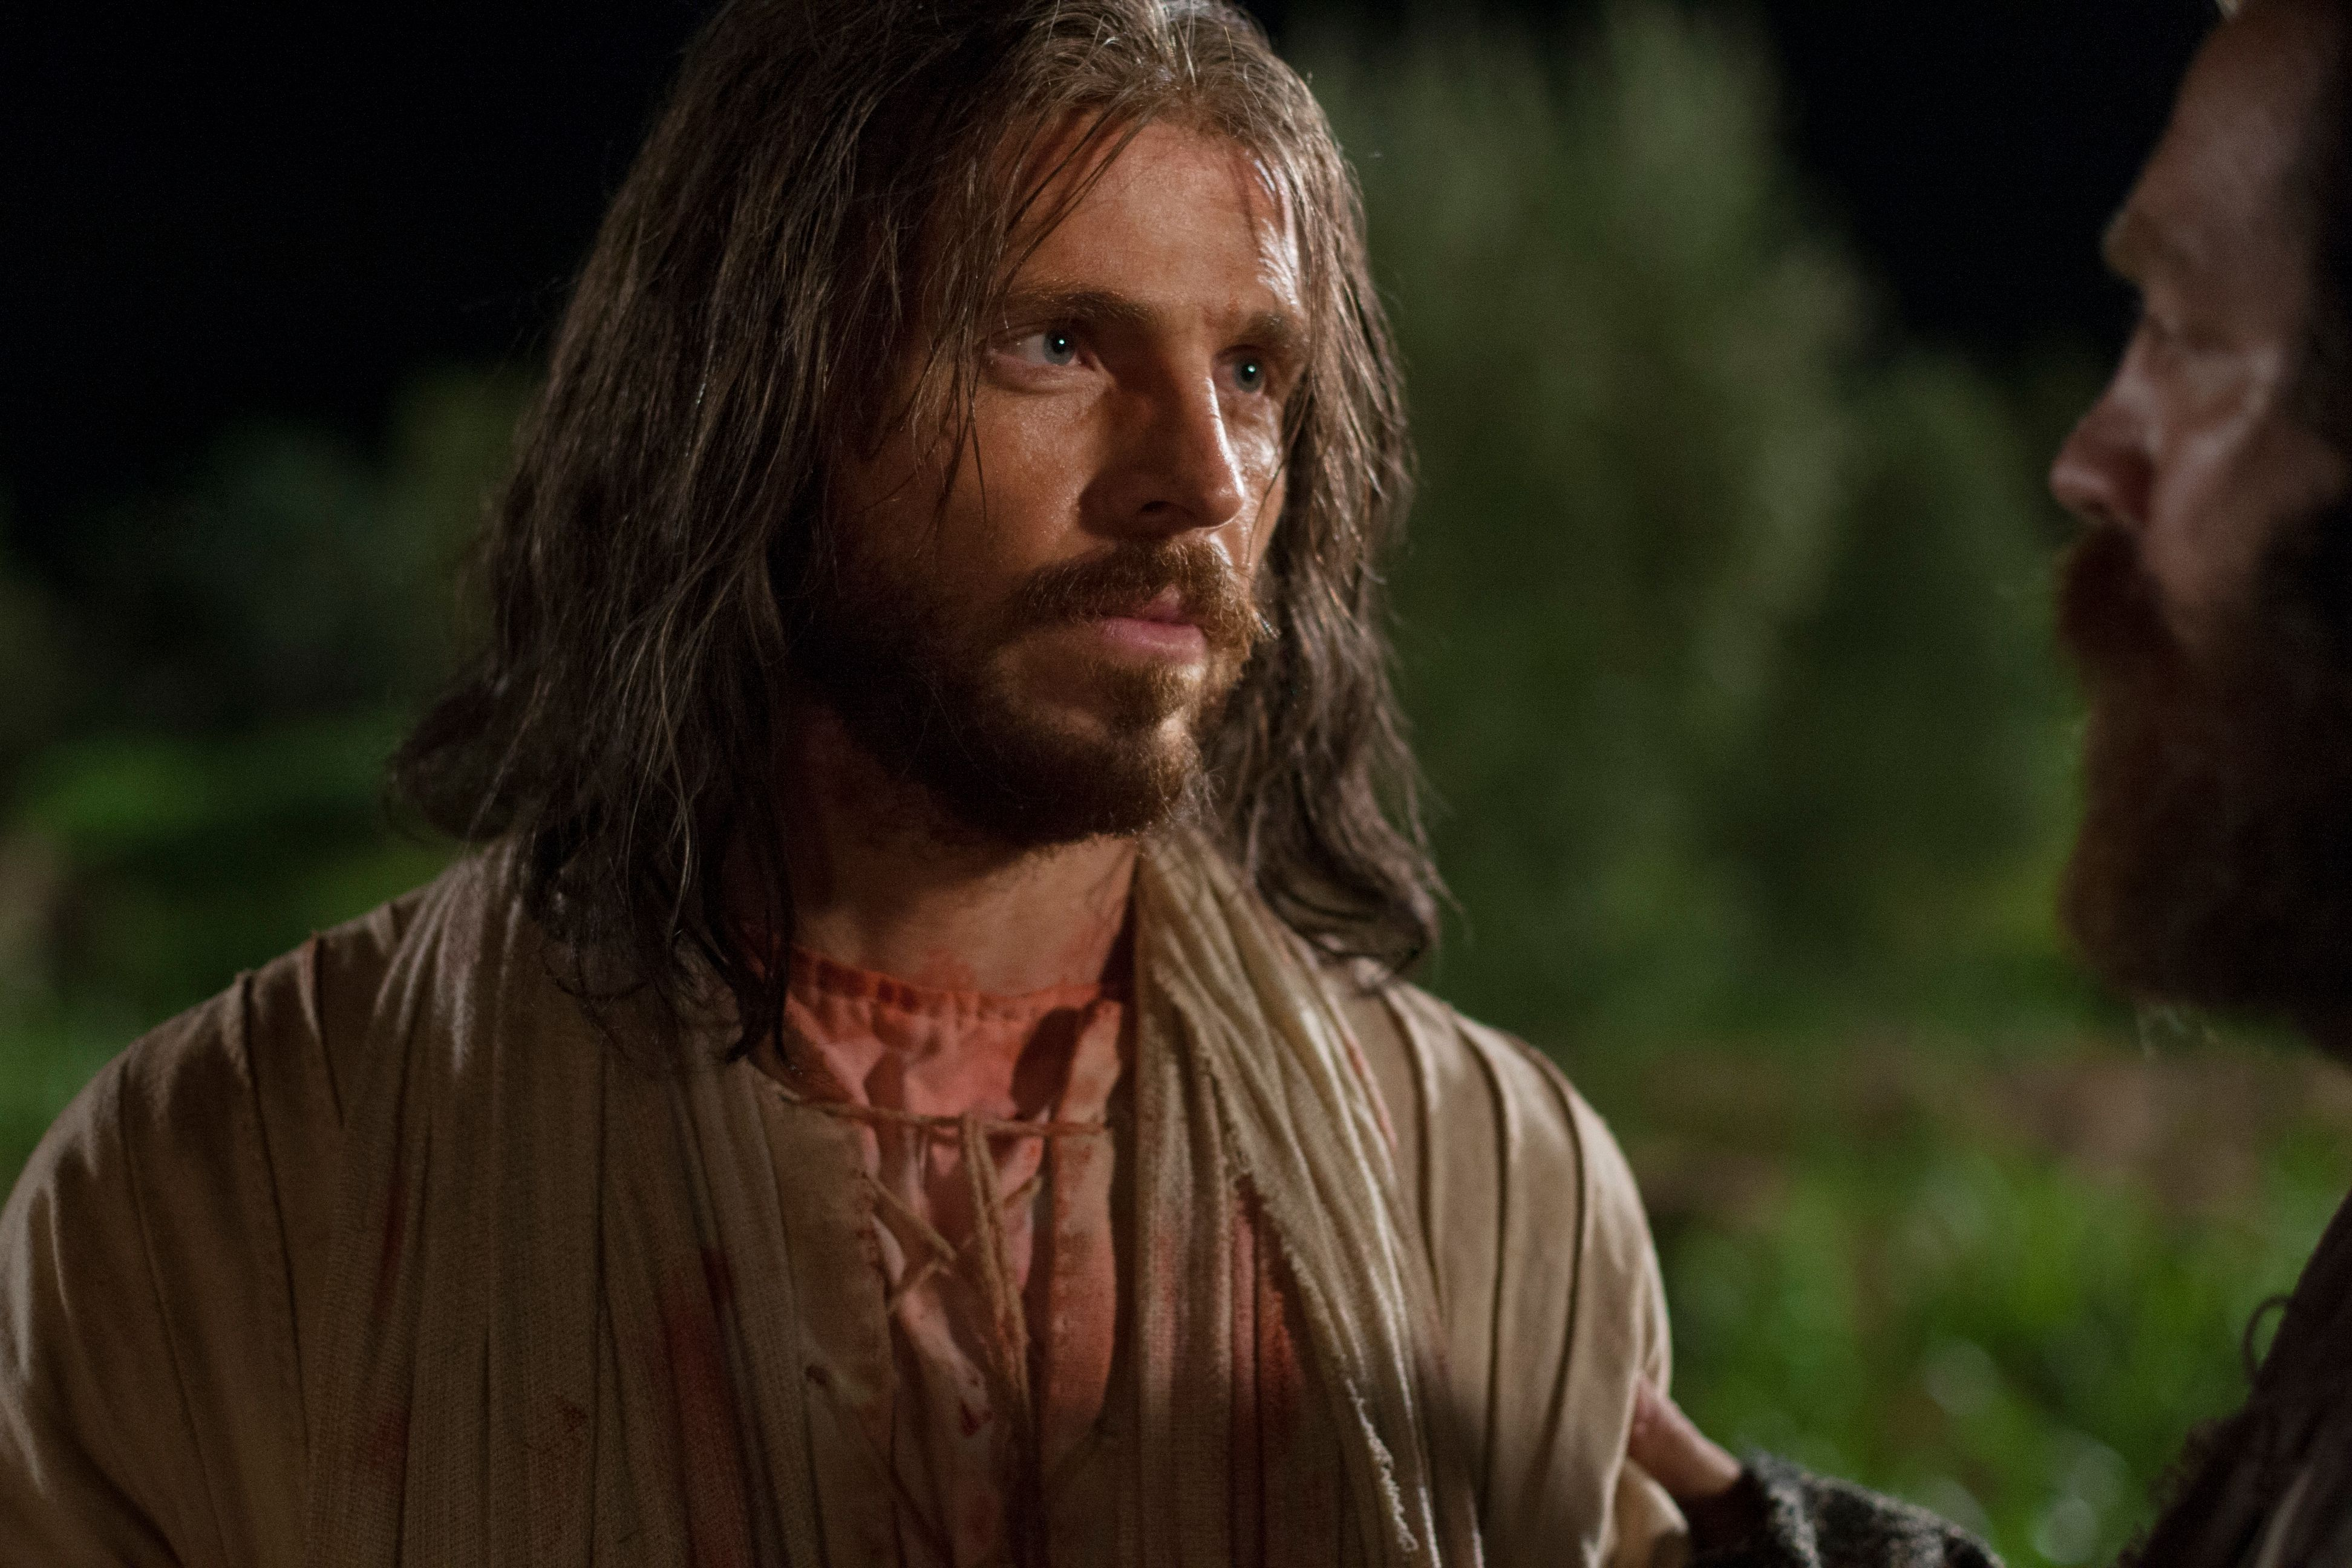 Jesus looks at Judas Iscariot after being betrayed.